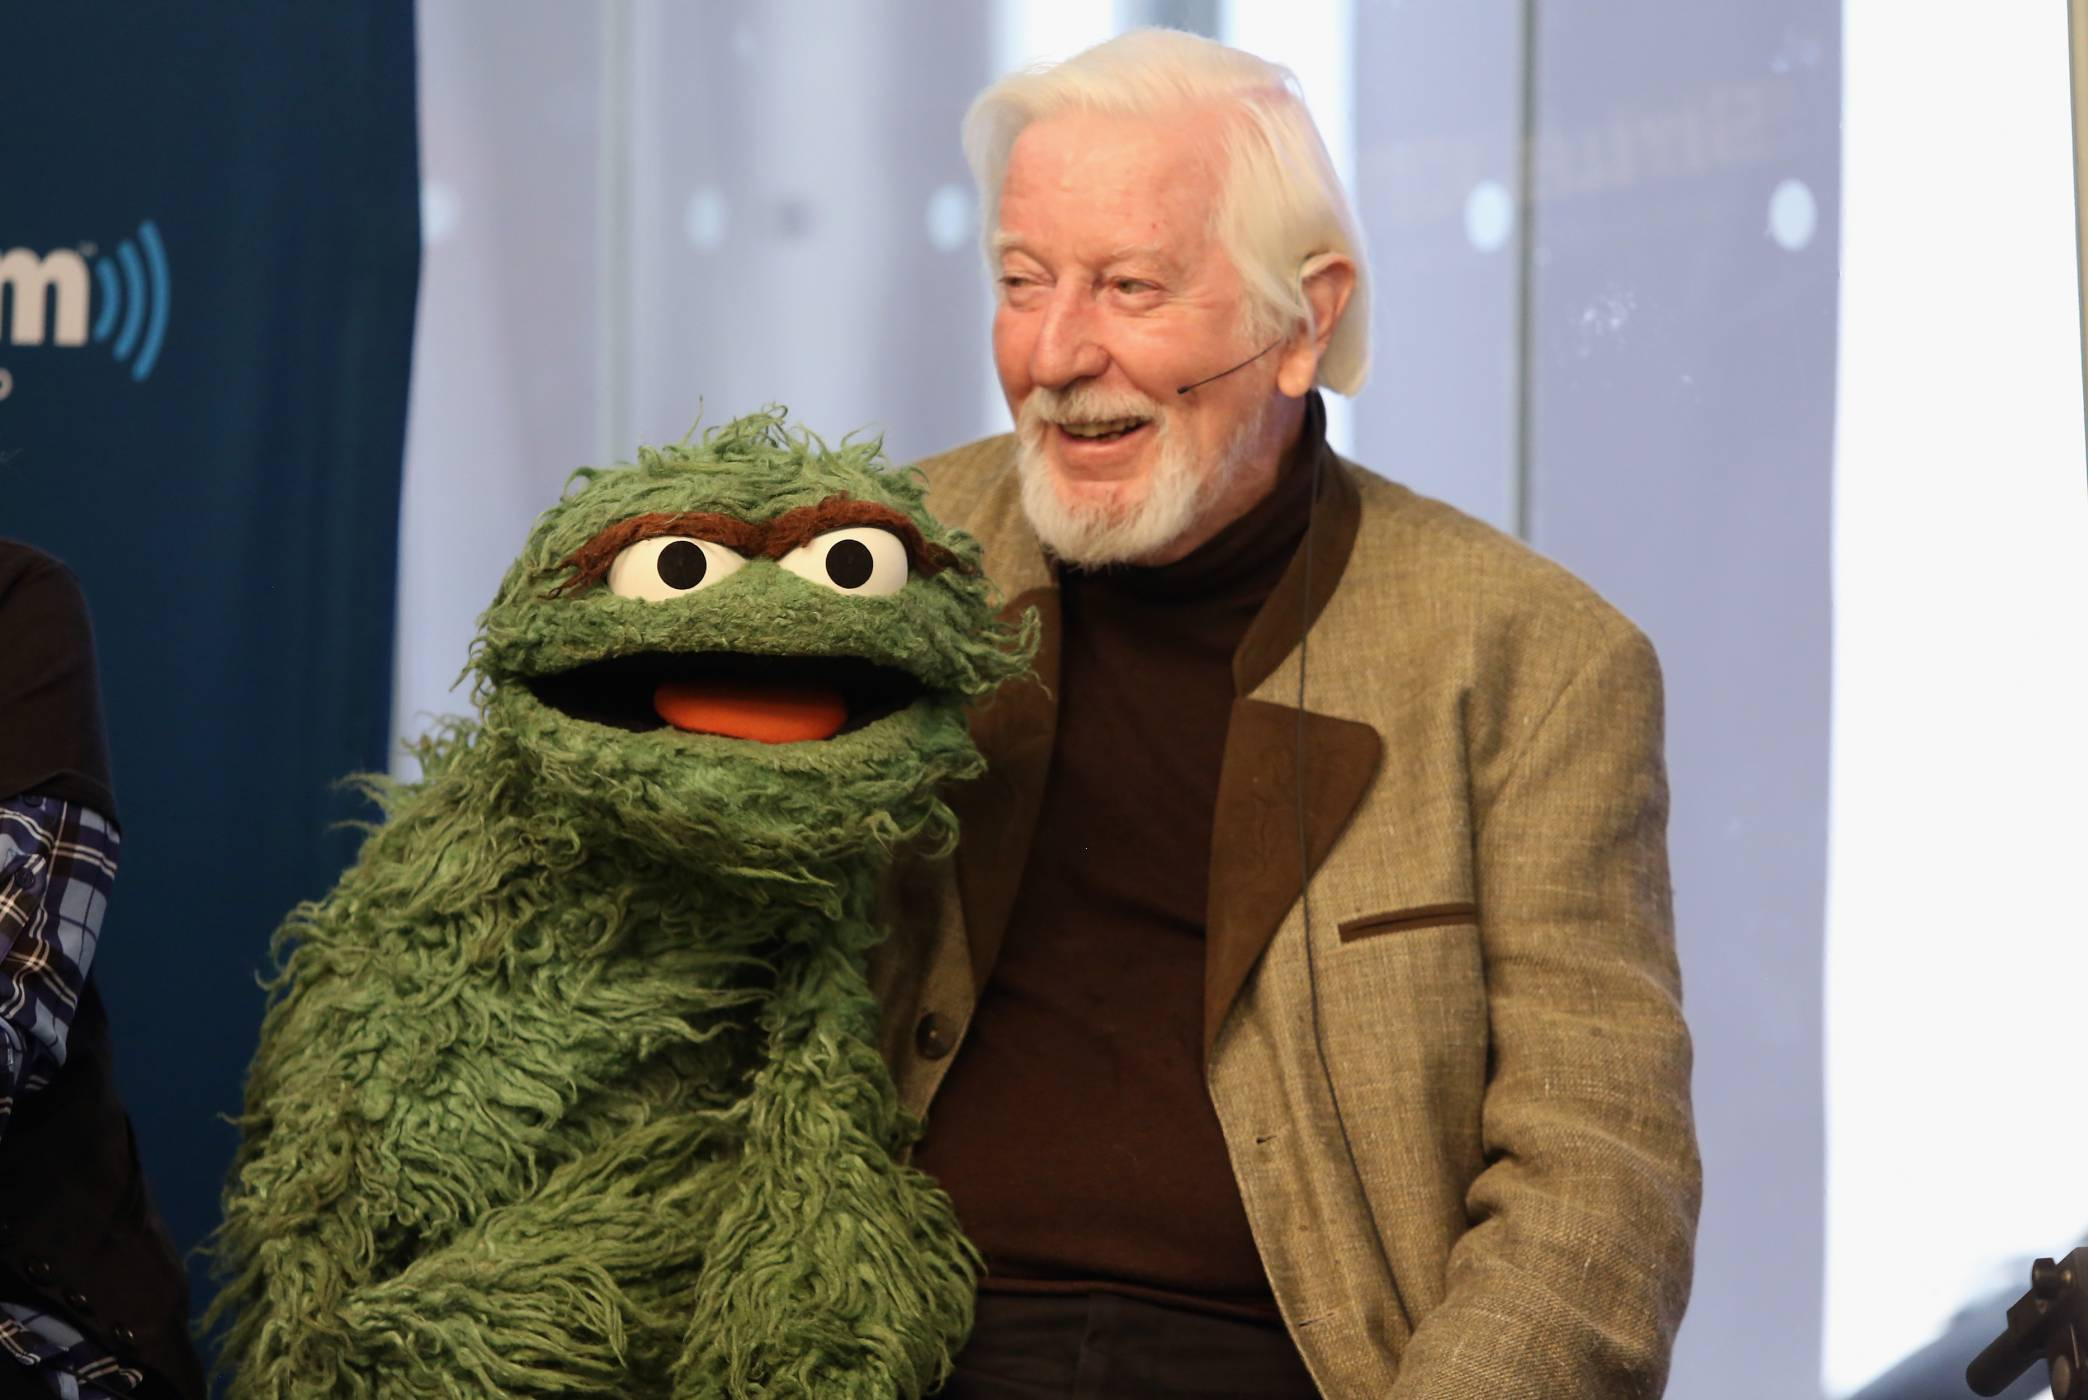 Carroll Spinney with Oscar the Grouch